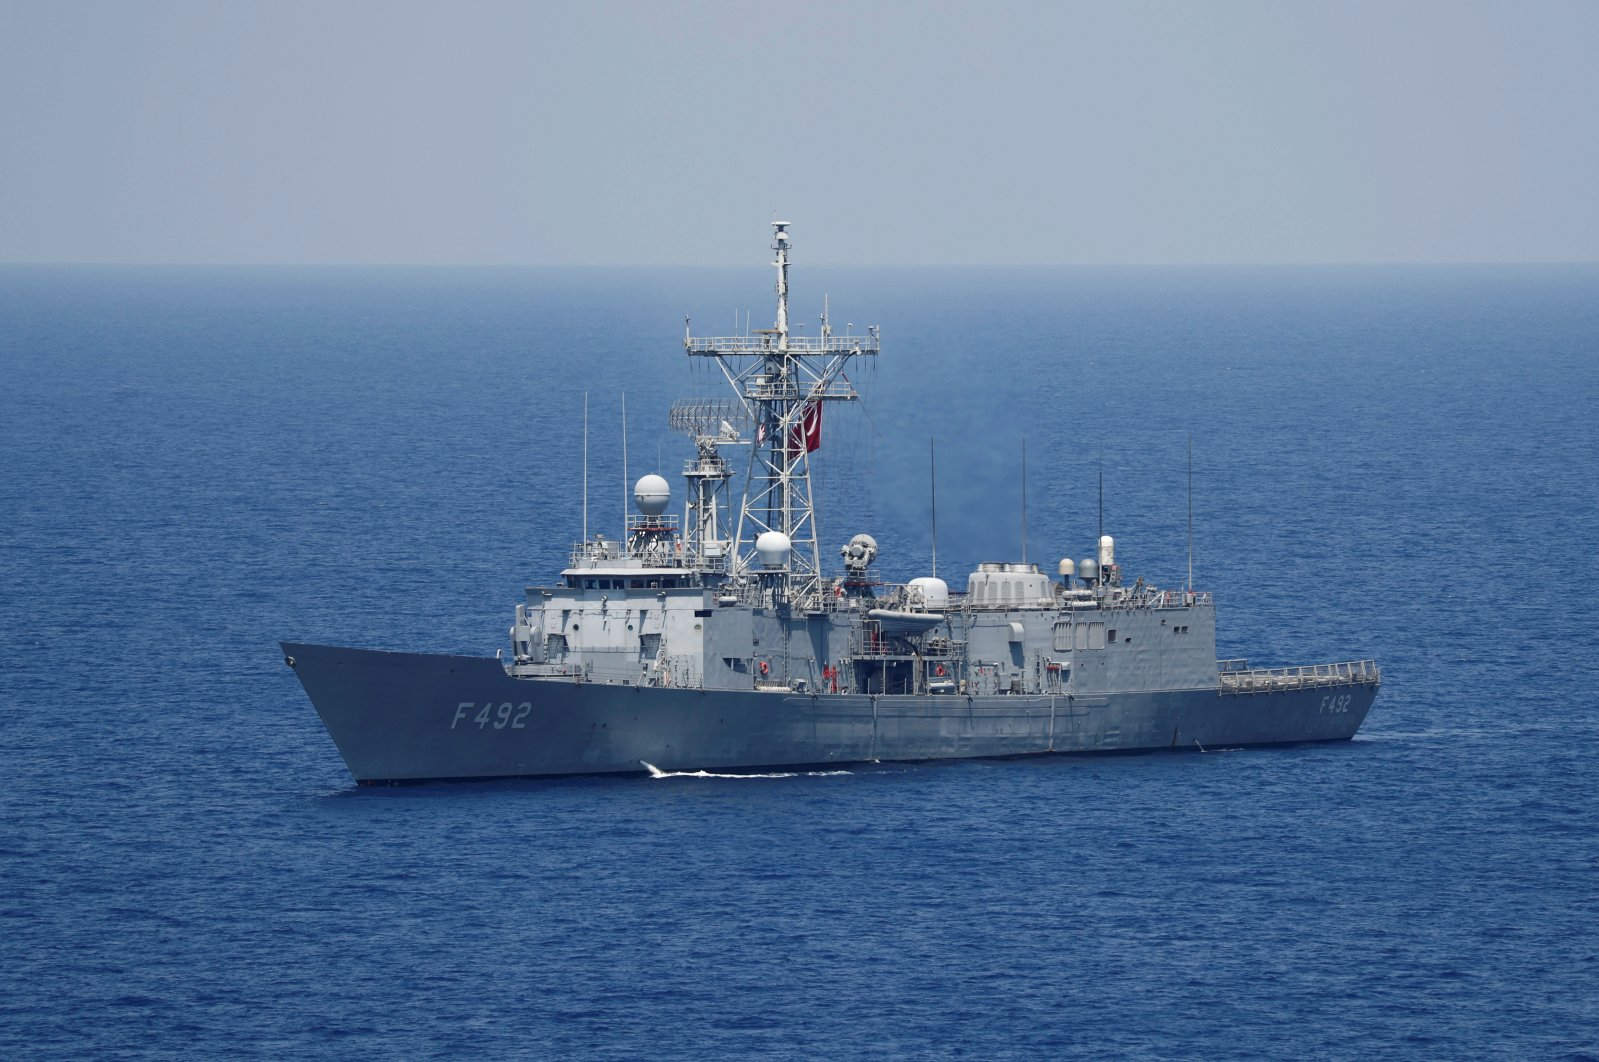 Turkish Navy frigate TCG Gemlik (F-492) escorts Turkish drilling vessel Yavuz in the Eastern Mediterranean Sea off Cyprus, Aug. 6, 2019. (Reuters Photo)